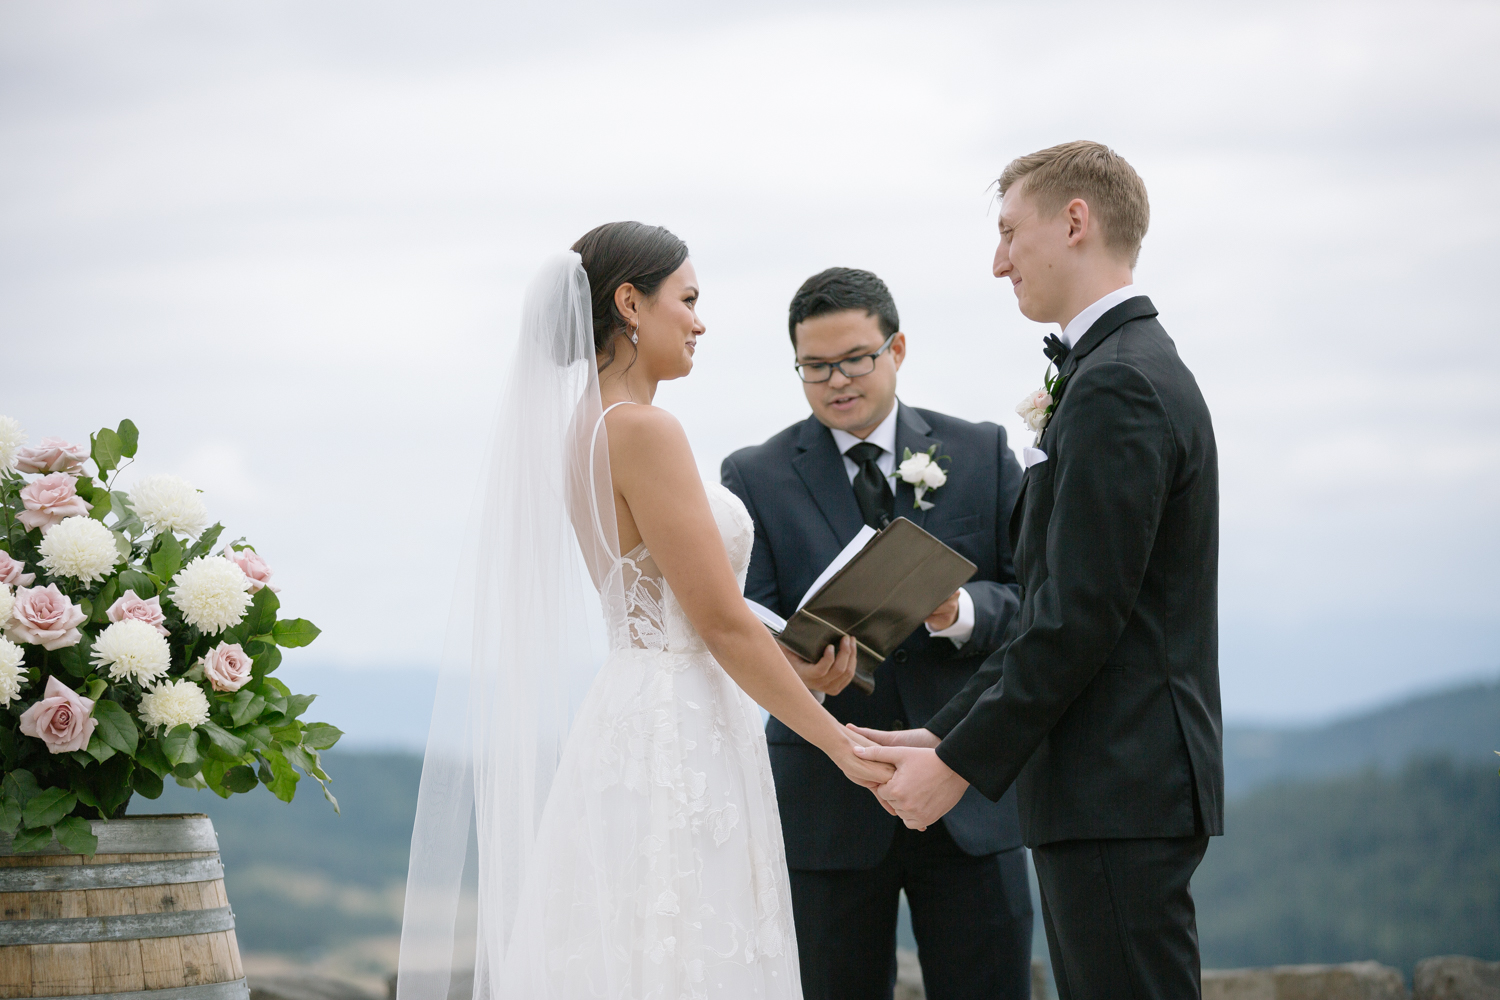 Youngberg Hill Vineyard Wedding in Wine Country Oregon - Corrie Mick Photography-317.jpg